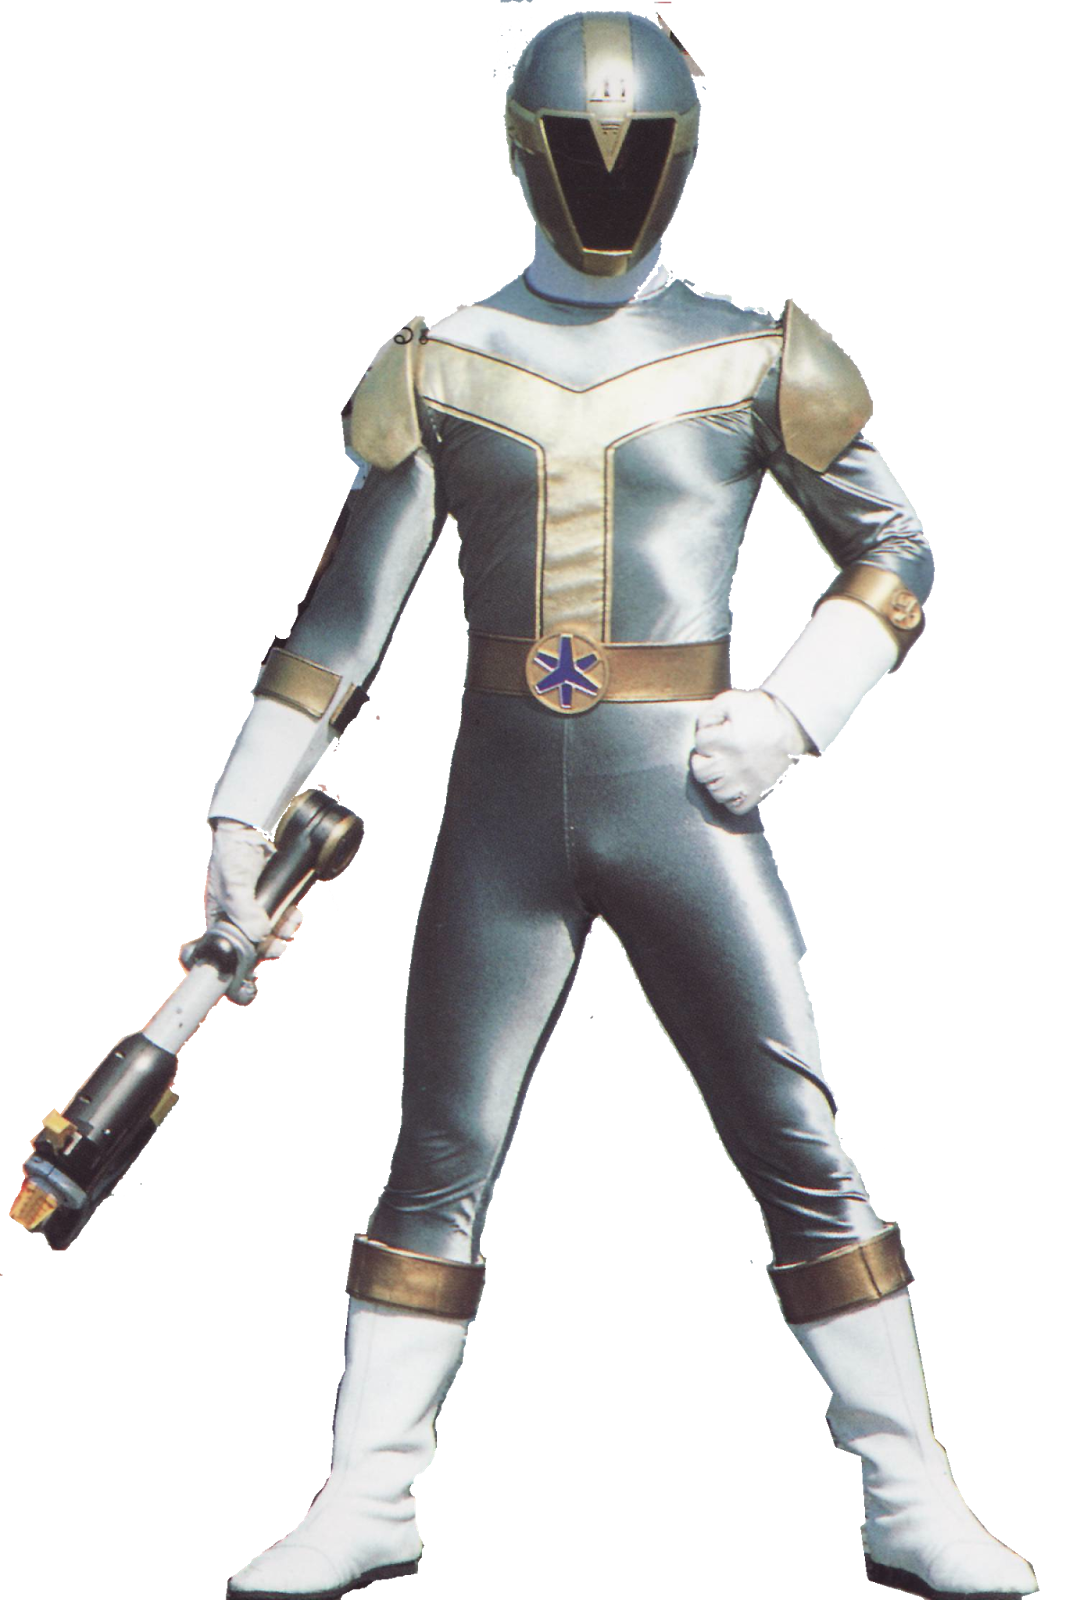 Henshin Grid Petition We Want Titanium Ranger And Spirit